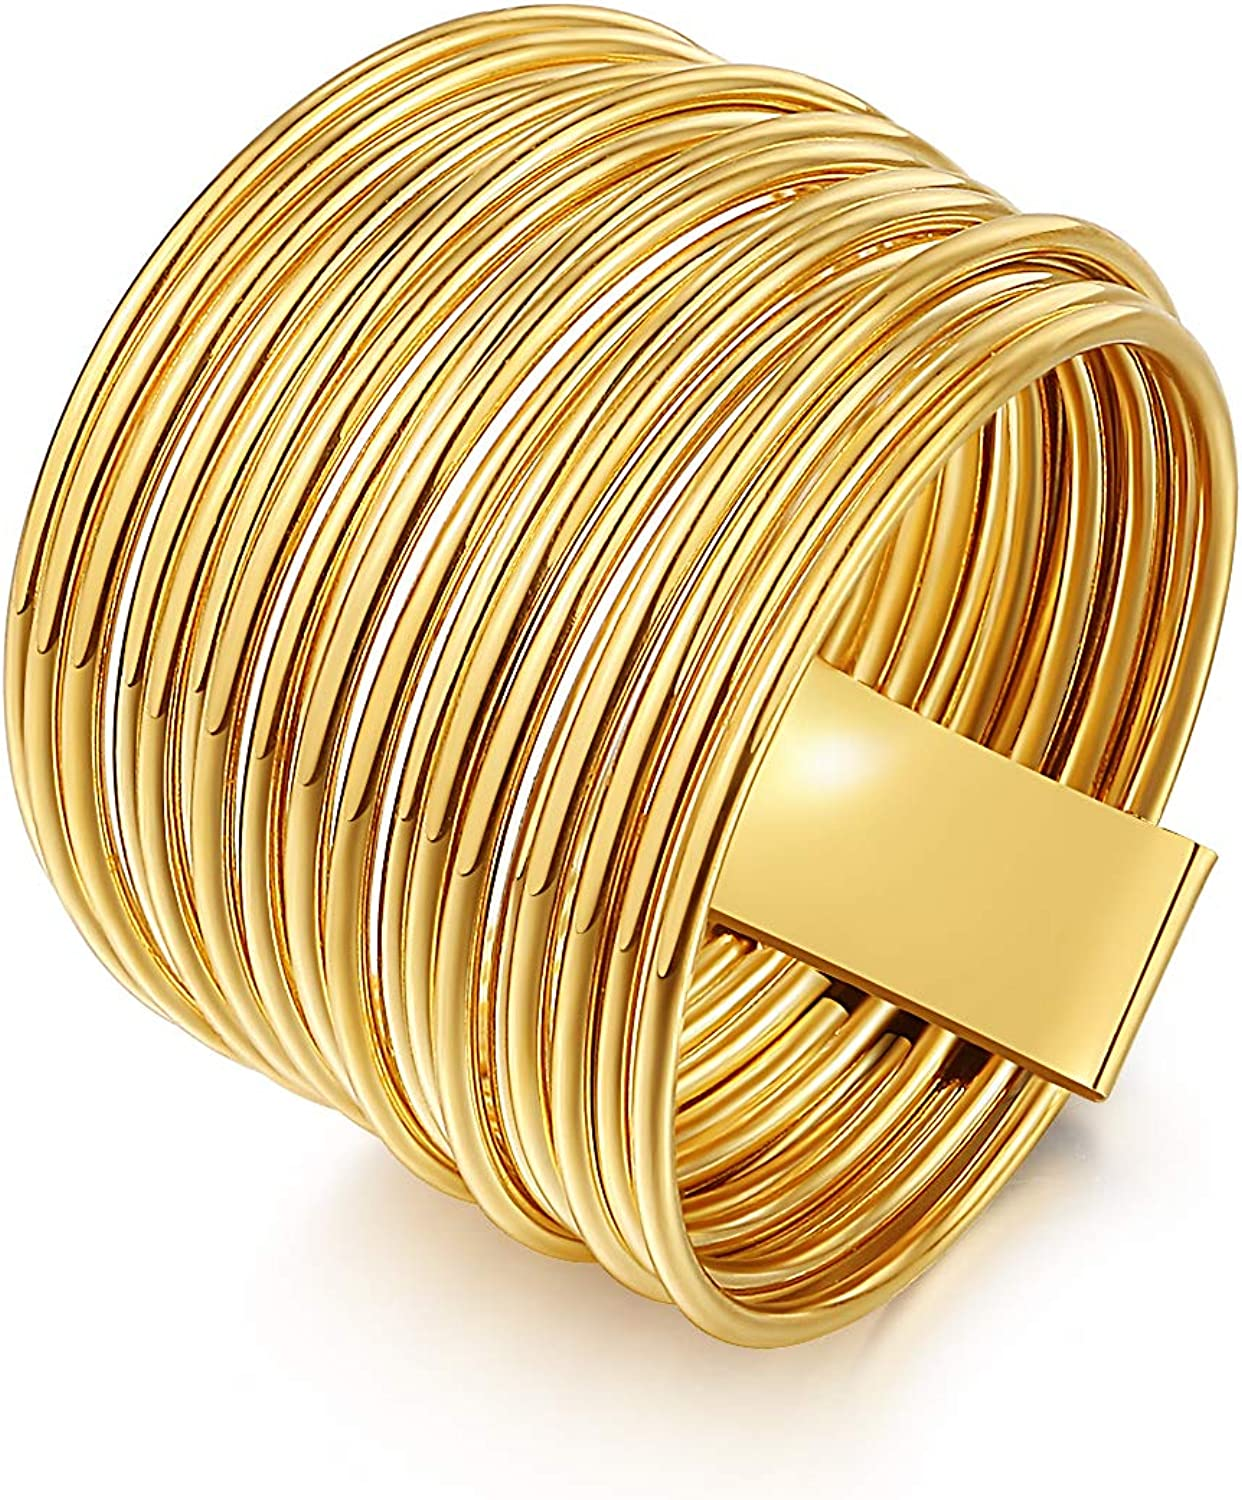 ailov Golden Multi Strand Band Ring Punk Thin Wired Multiple Ring Wrapped Boho Stacking 10K Gold-Plated Jewelry